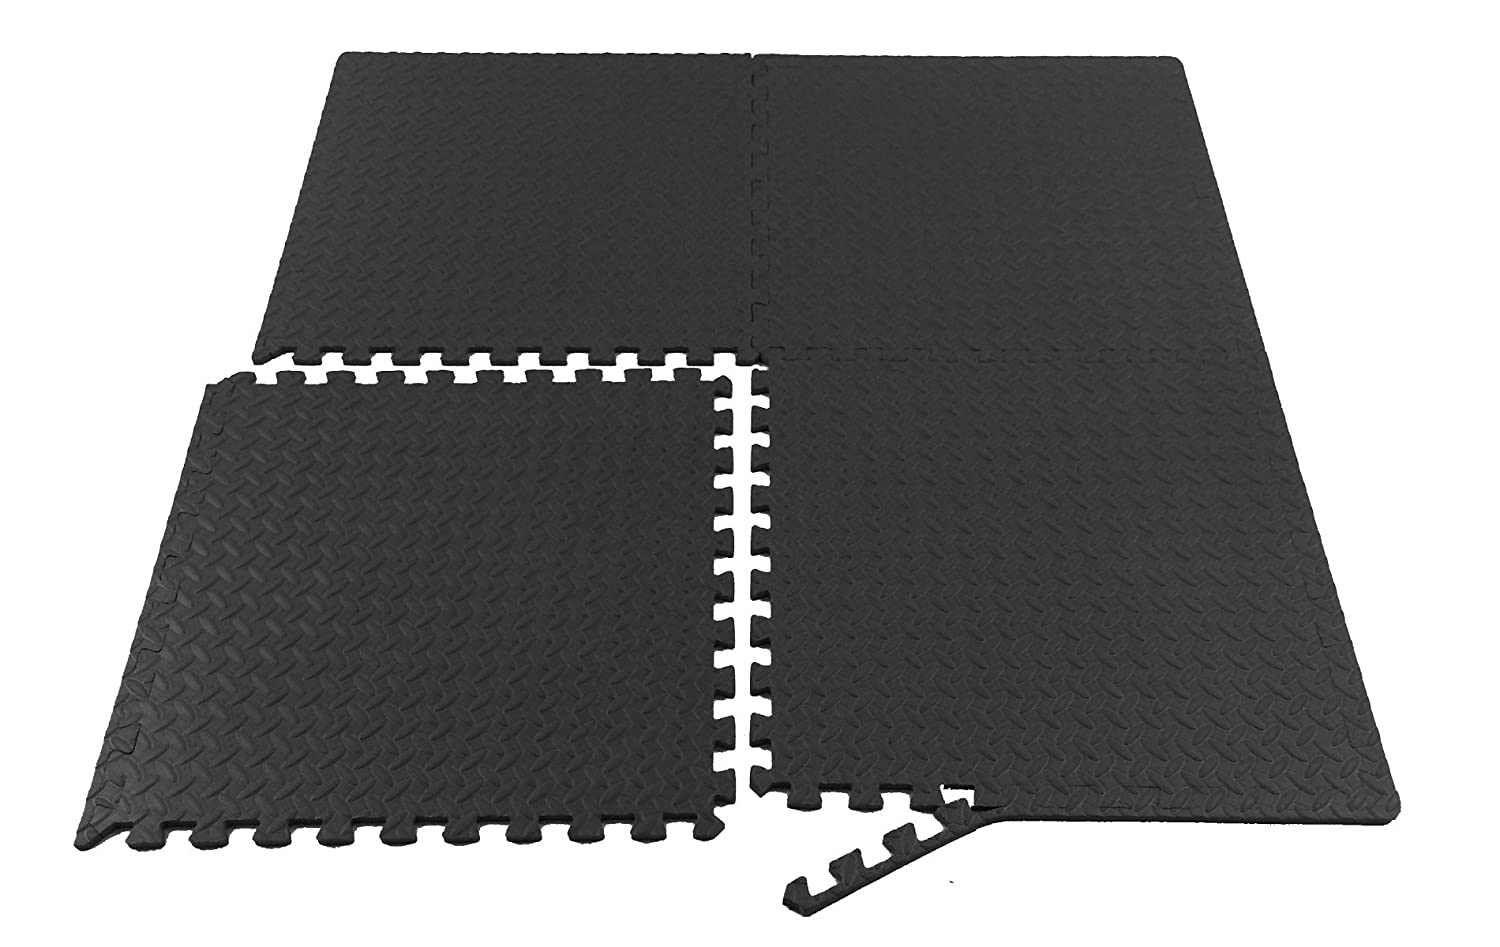 Amazon prosource fs 1908 pzzl puzzle exercise mat eva foam amazon prosource fs 1908 pzzl puzzle exercise mat eva foam interlocking tiles black 24 square feet sports outdoors dailygadgetfo Gallery